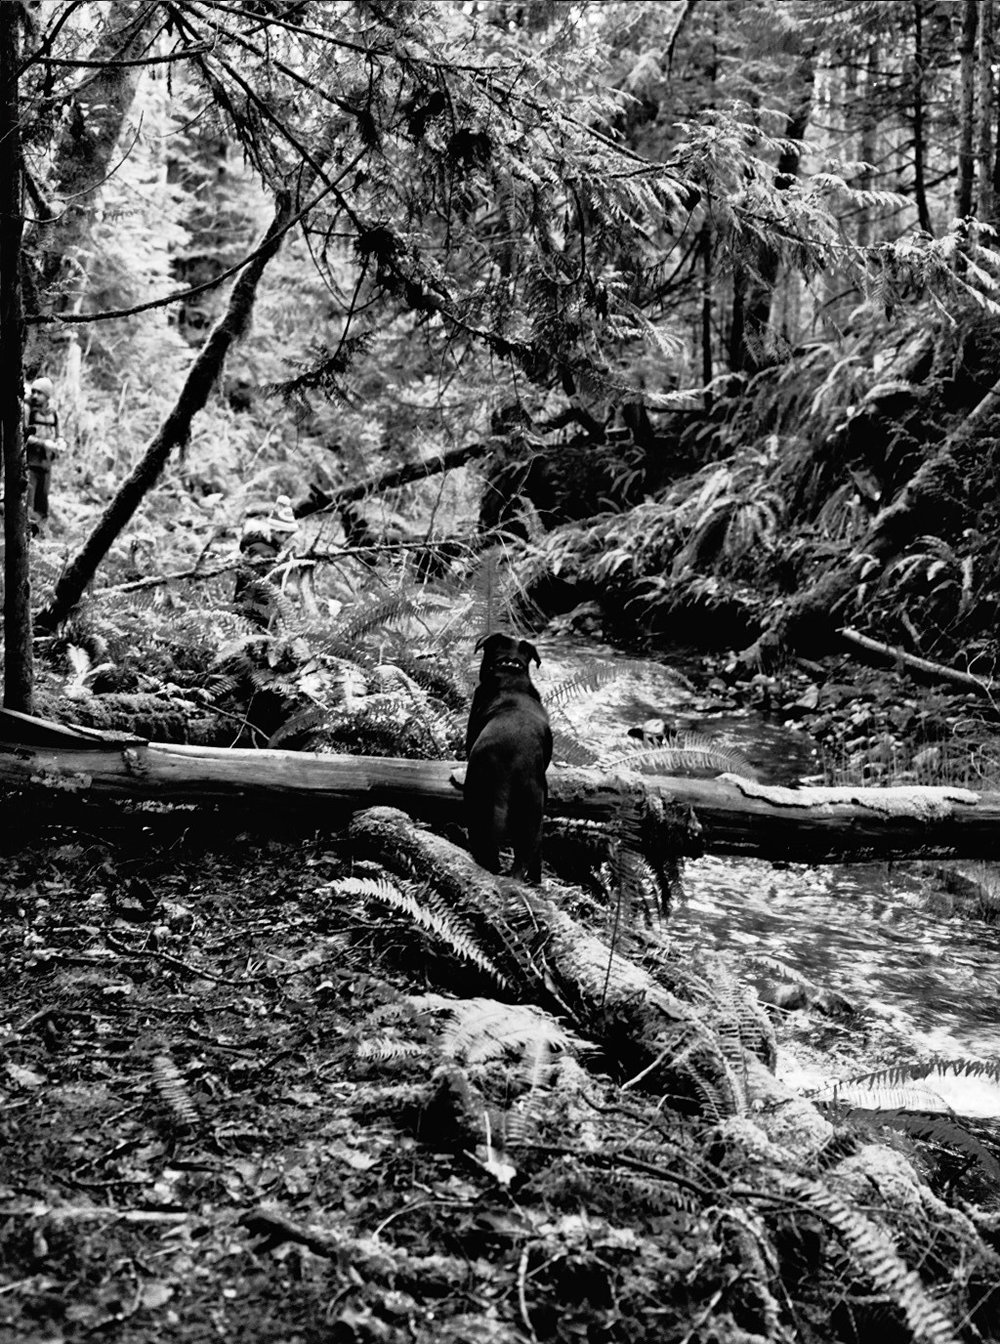 Seve Dog at the Creek Crossing in Bamberton, BC